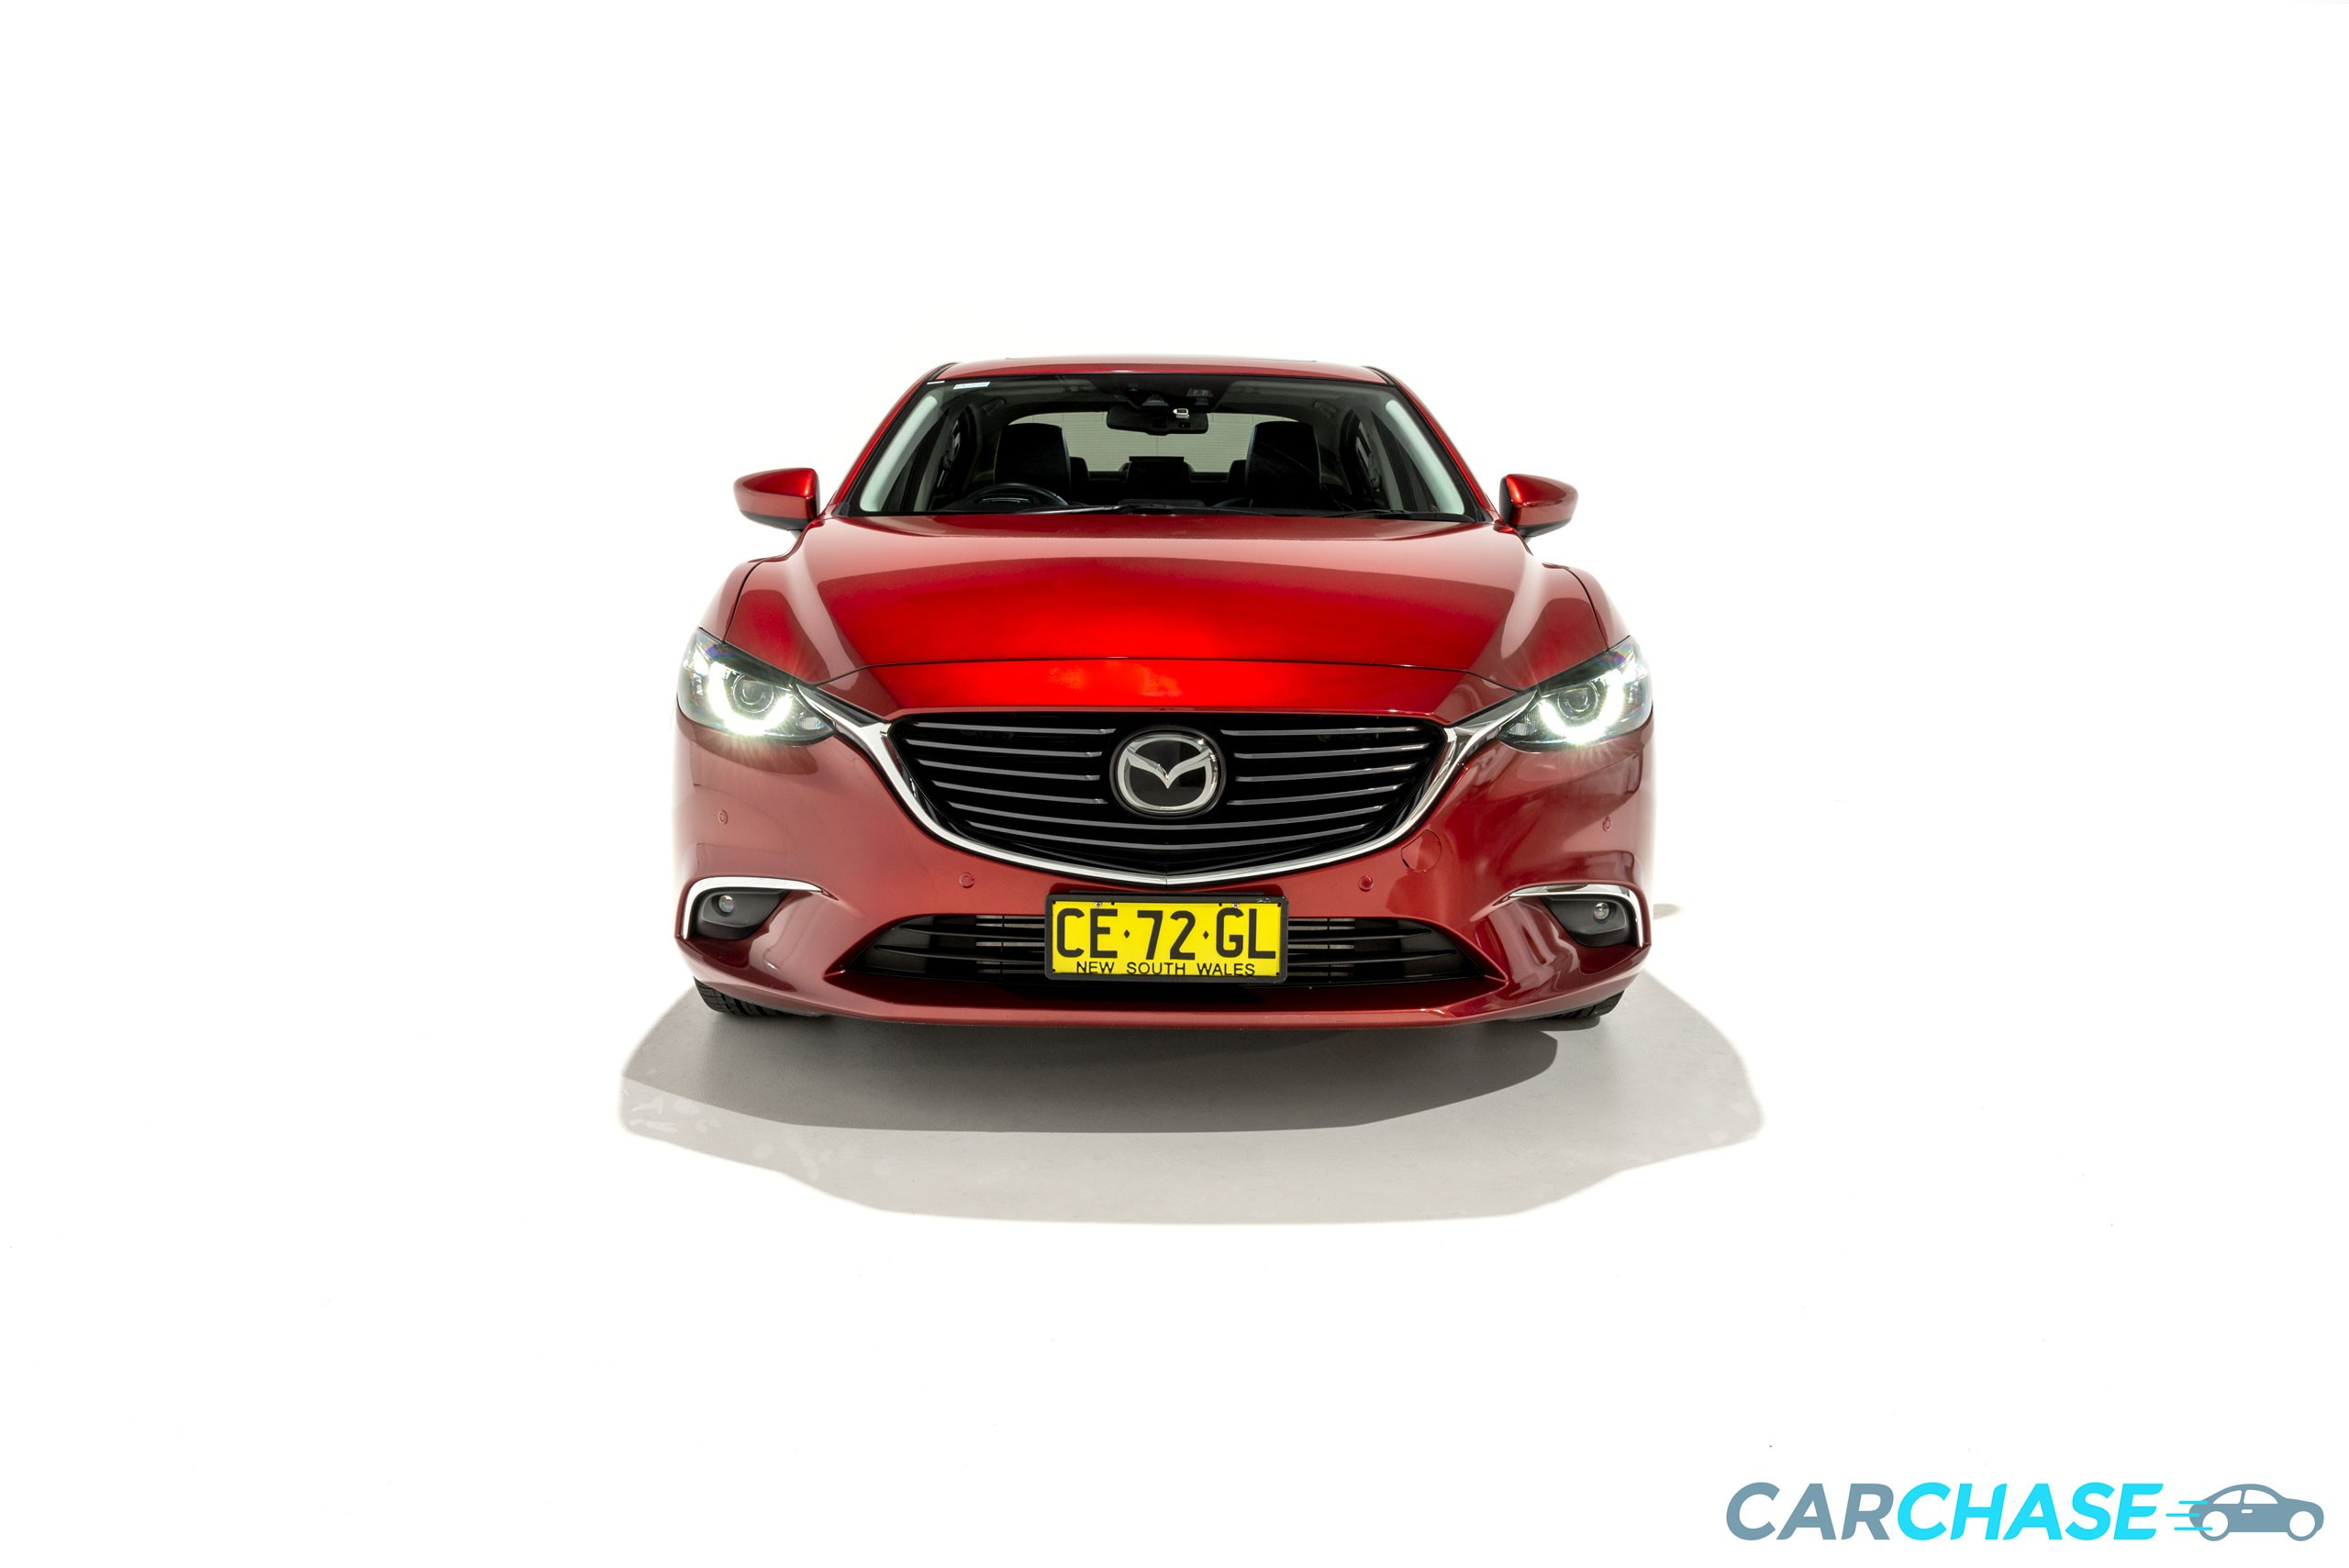 Image of front profile of 2015 Mazda 6 Atenza